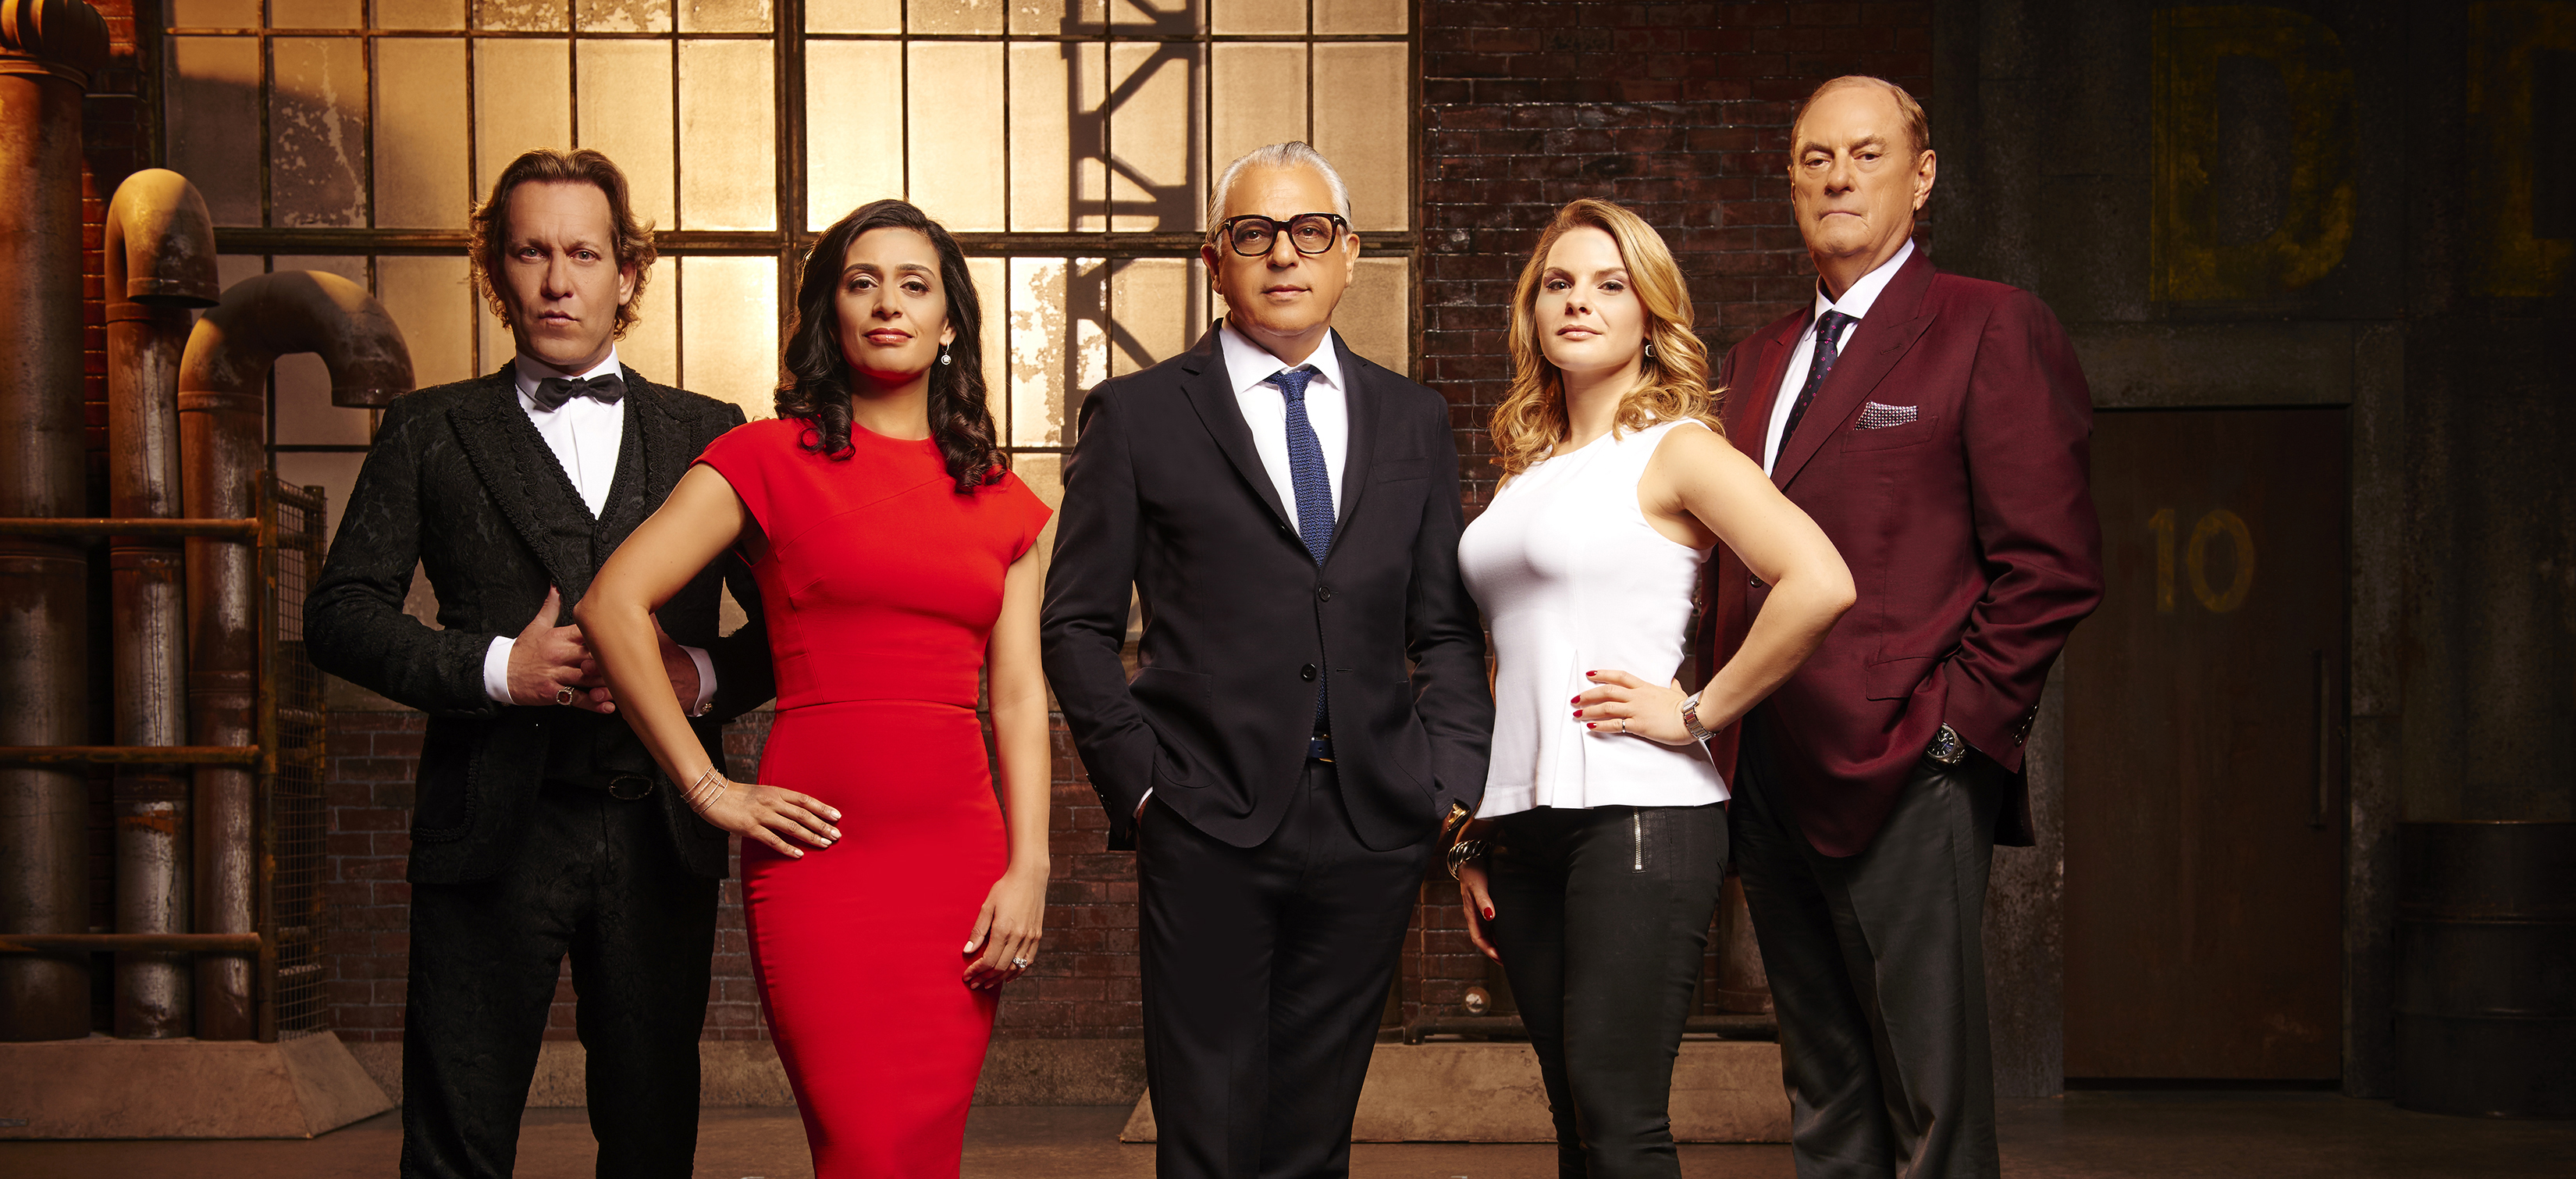 Wildeboer Dellelce renewed<br>as legal advisers to Season 10 of CBC's hit reality<br>TV series Dragons' Den